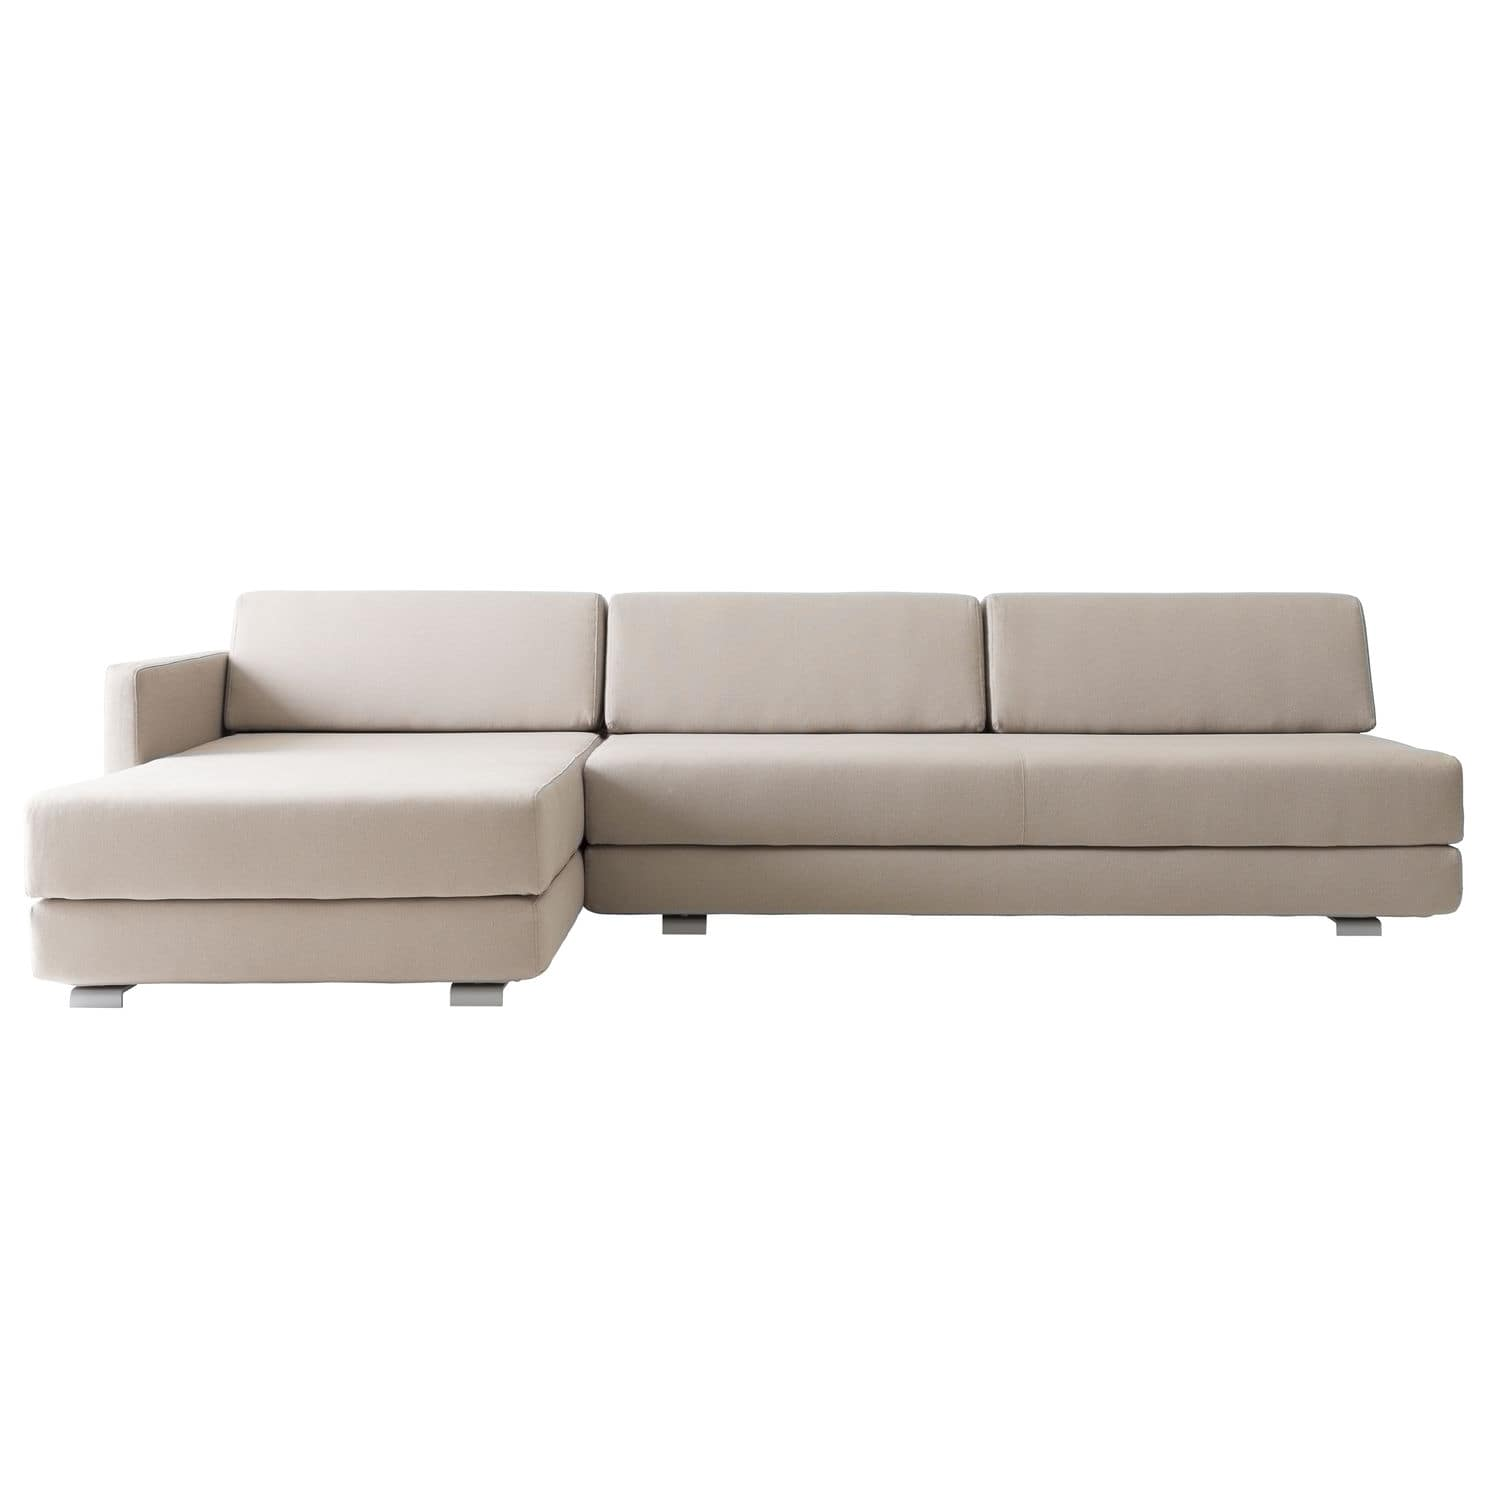 Modular Sofa Bed Contemporary Fabric Lounge By